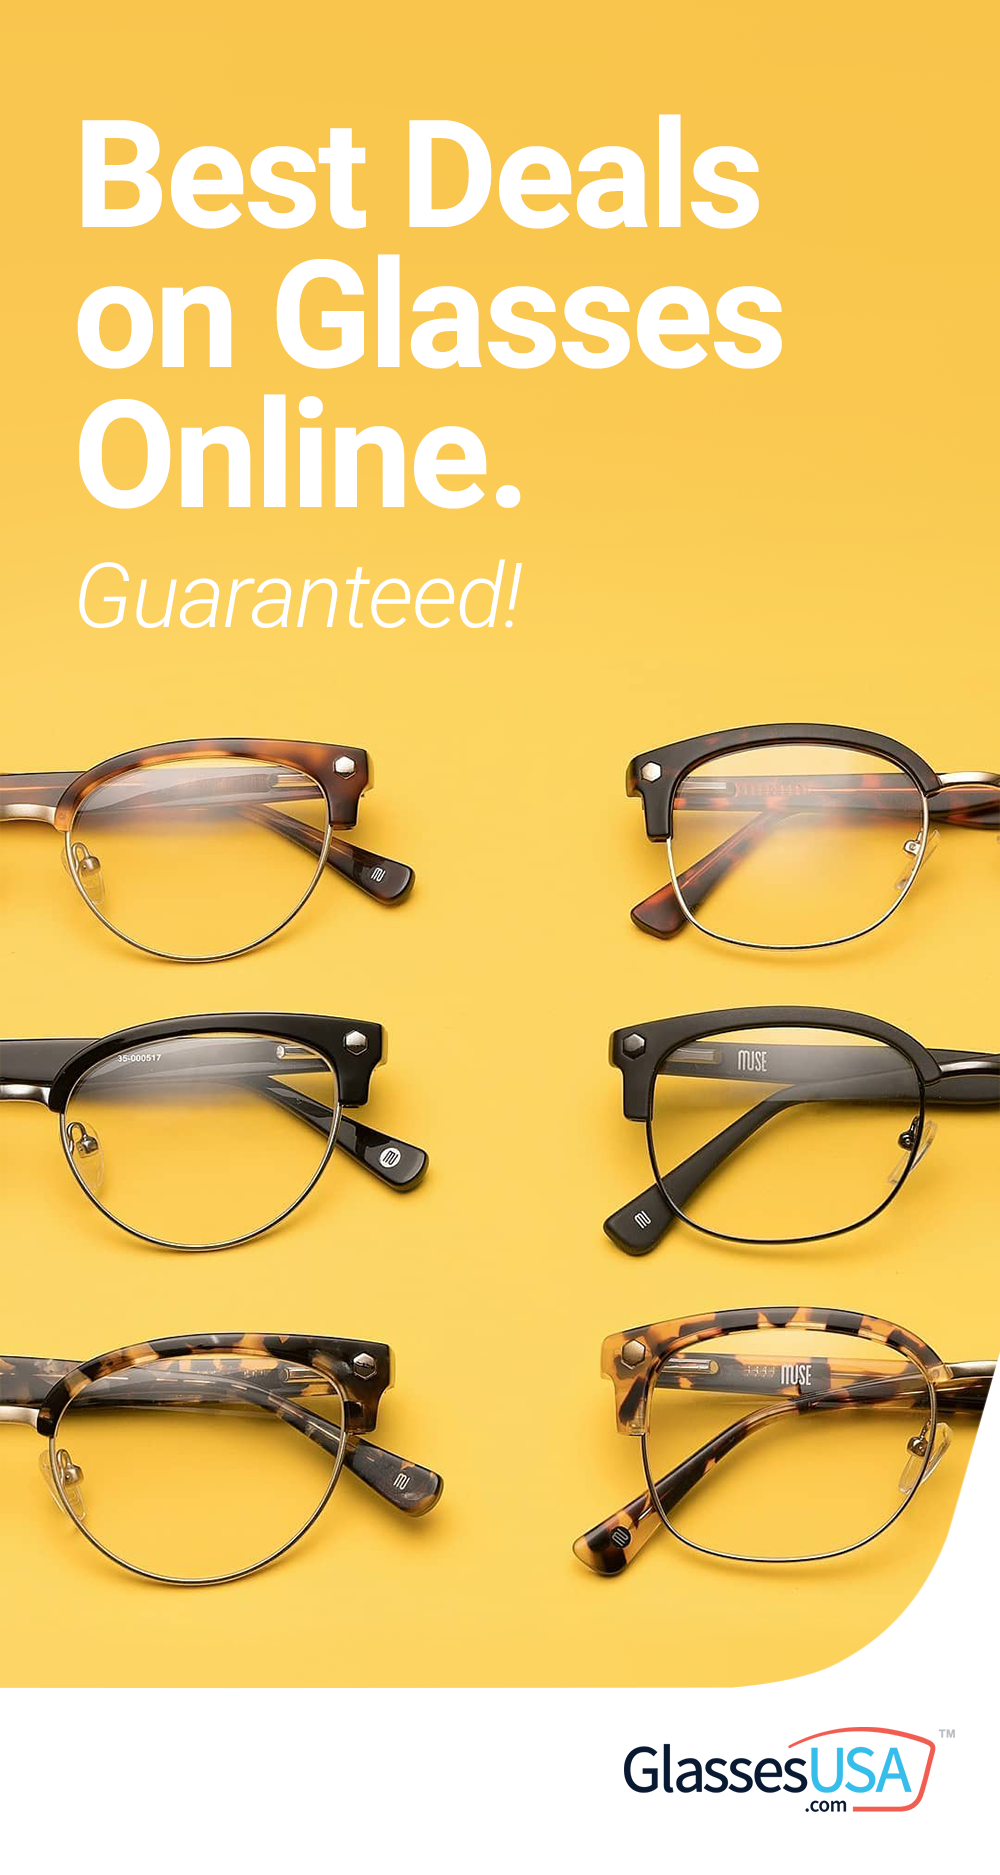 d60eab8fa0d2 Stop Paying $300 over prescription glasses. Complete pair from $24 + free  shipping. Shop now!